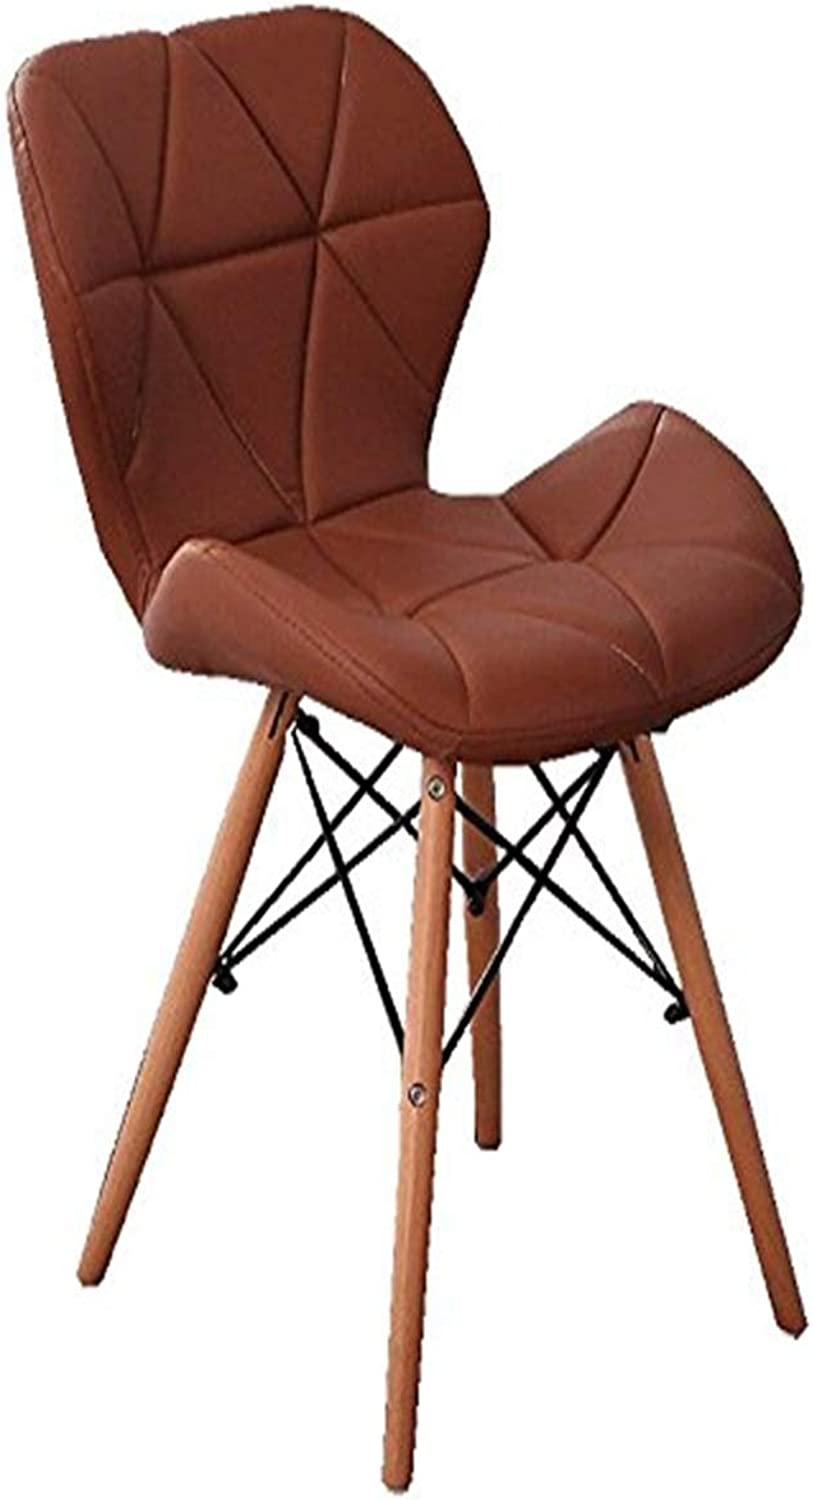 Stool Bar Stool Modern Minimalist Chair Computer Chair Solid Wood Dining Table and Chairs Home Leisure Chair A Variety of colors Optional +